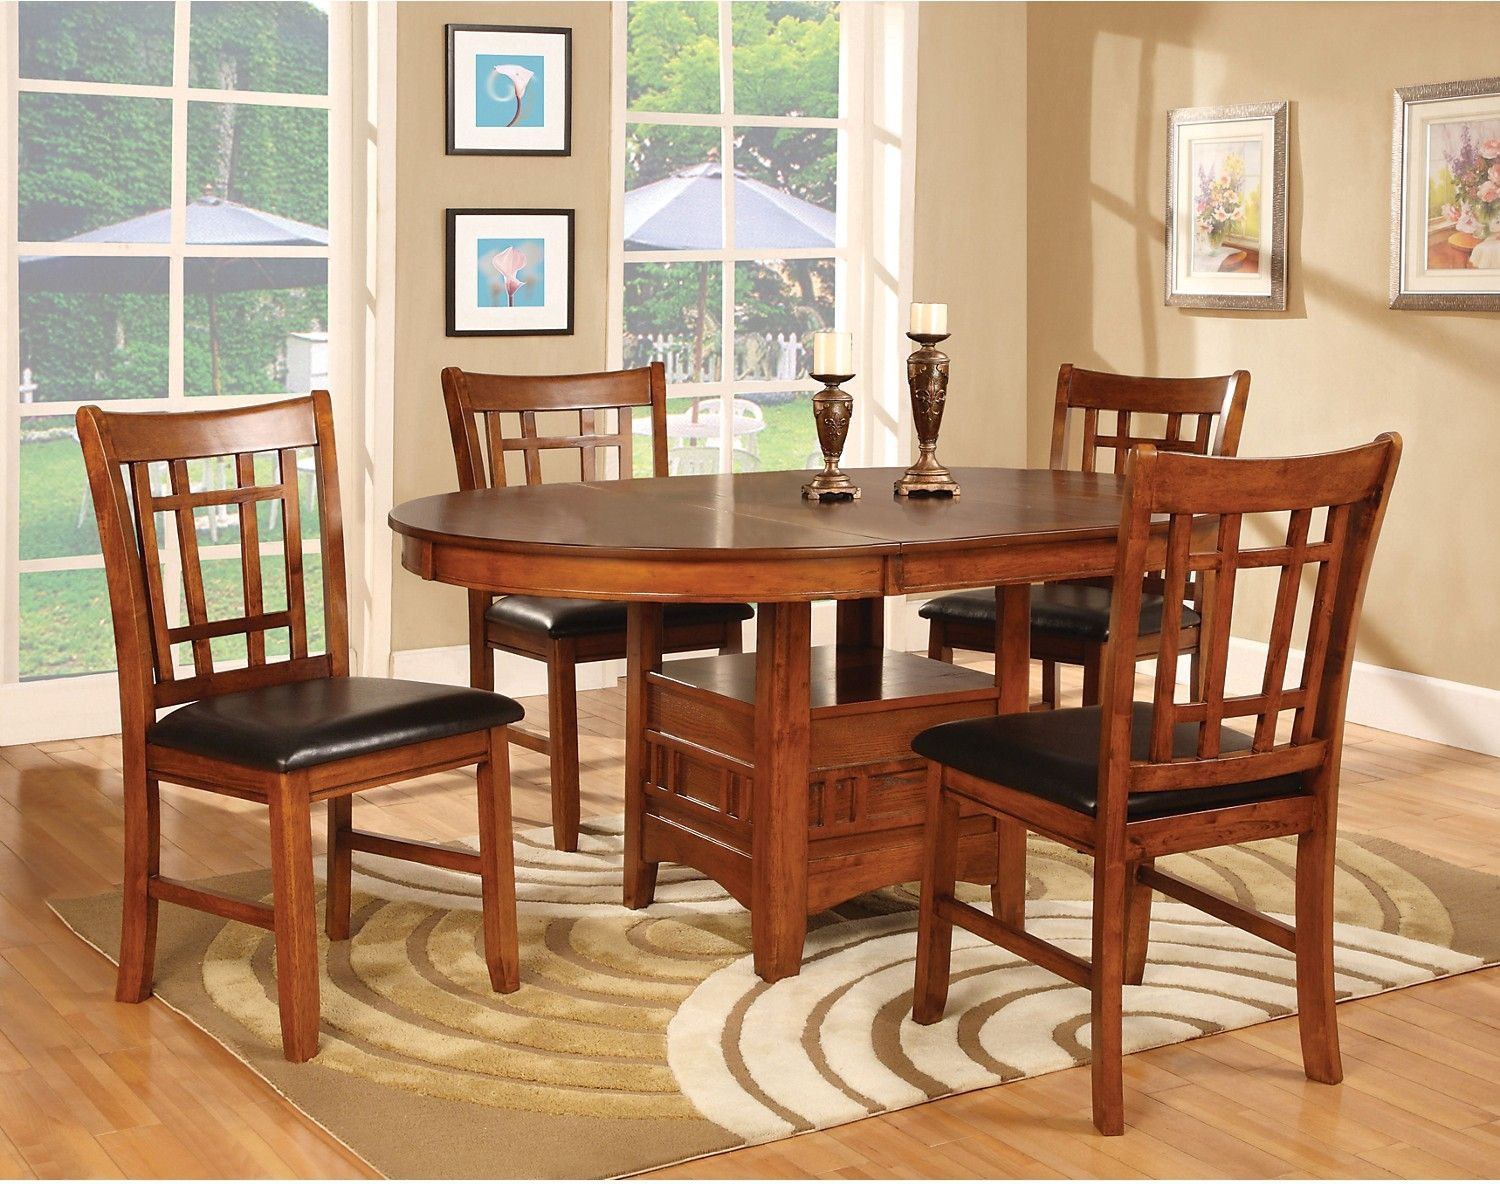 Dining Room Furniture Dalton 7 Piece Package Oak